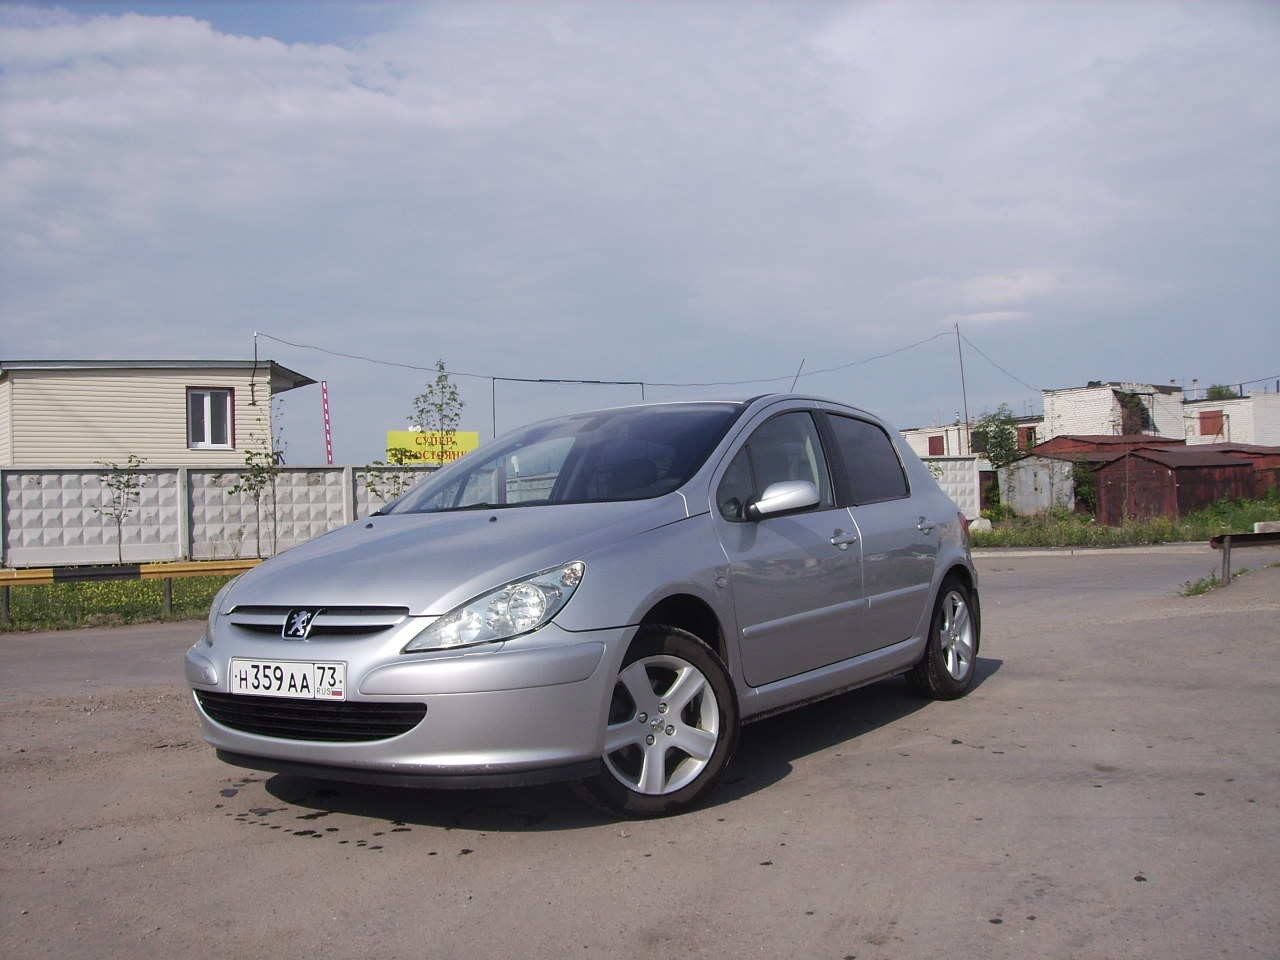 2003 peugeot 307 photos 1 6 gasoline ff manual for sale. Black Bedroom Furniture Sets. Home Design Ideas